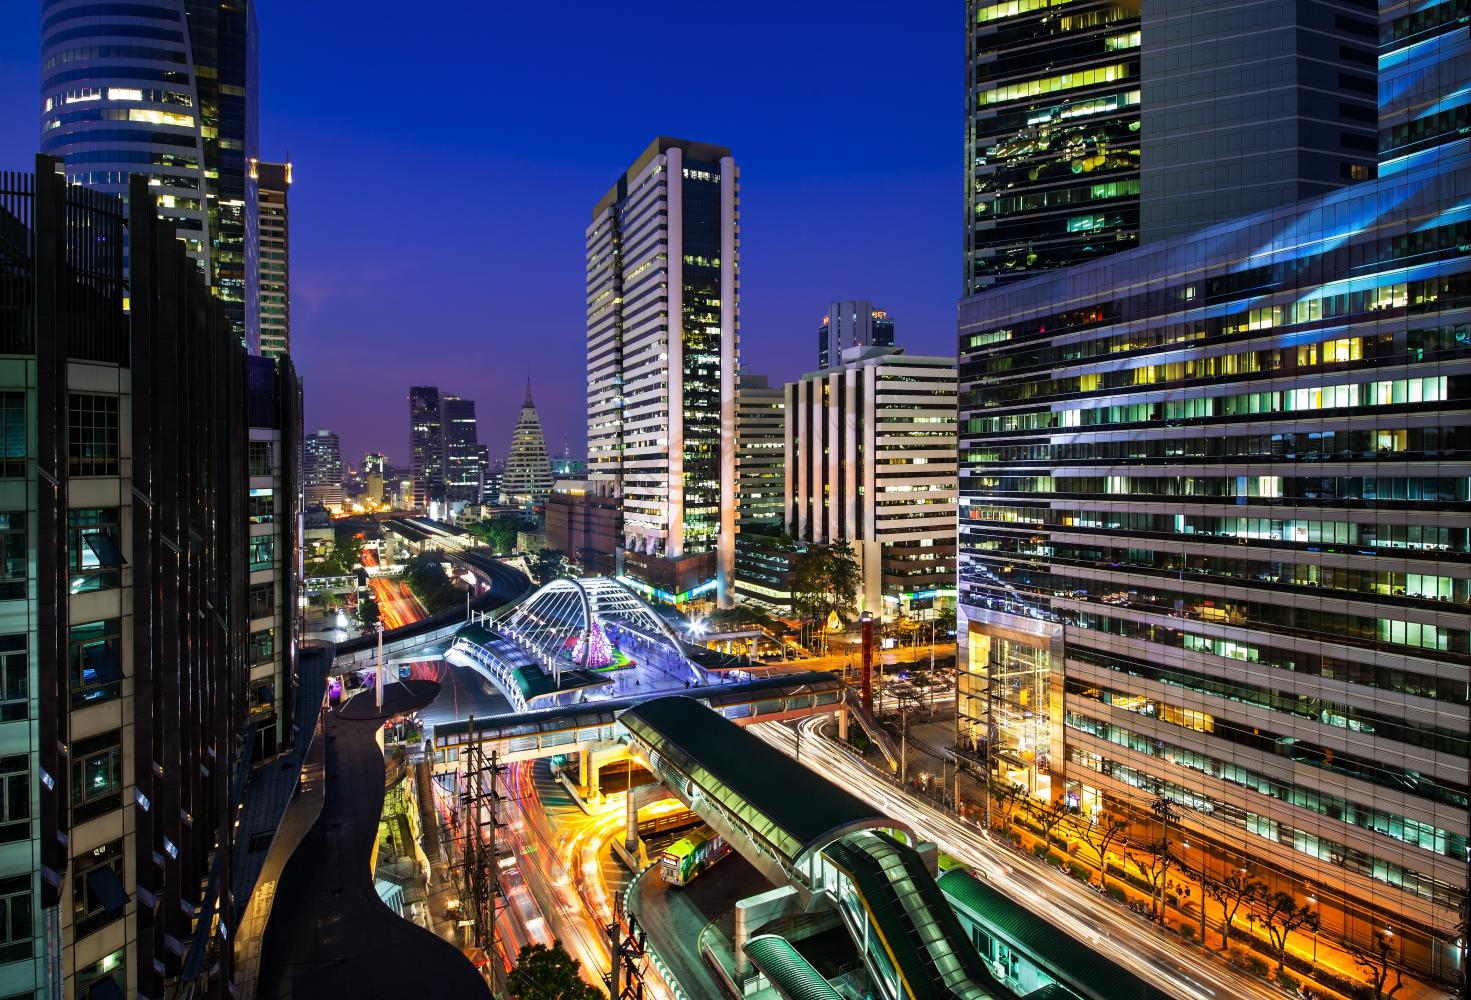 The UK aims to export smart city technology to Thailand.